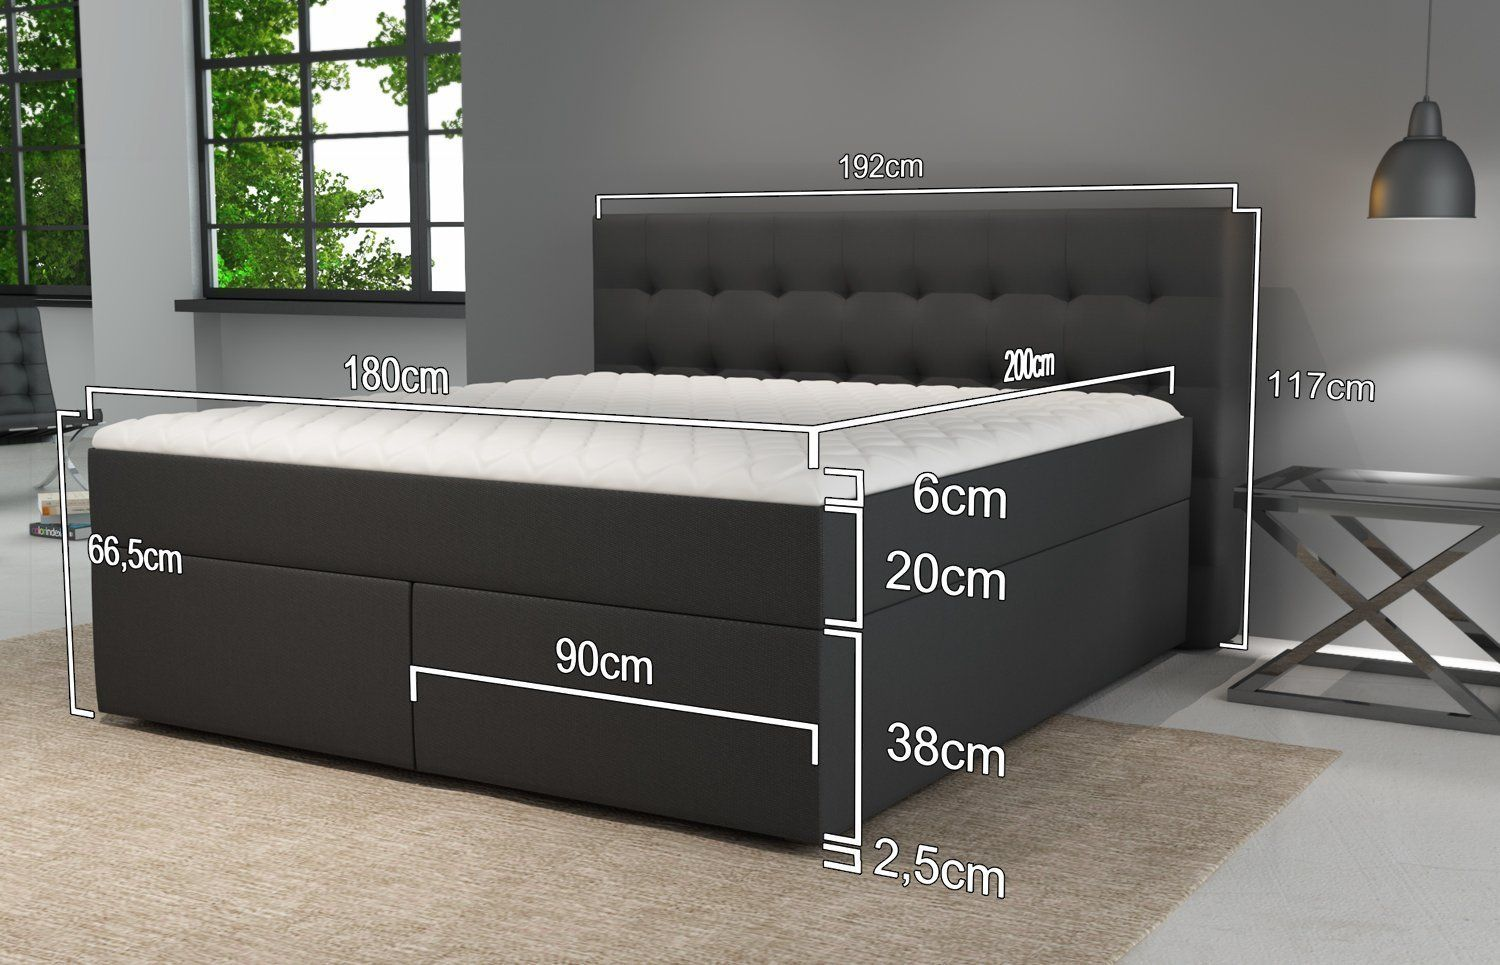 Jumbo Envelope Box Spring Beds Size King With Luxury Pocket Sprung Mattresses And Visco Topper Various Stitched Head Parts To Choose From Amaz Haus Boxsp